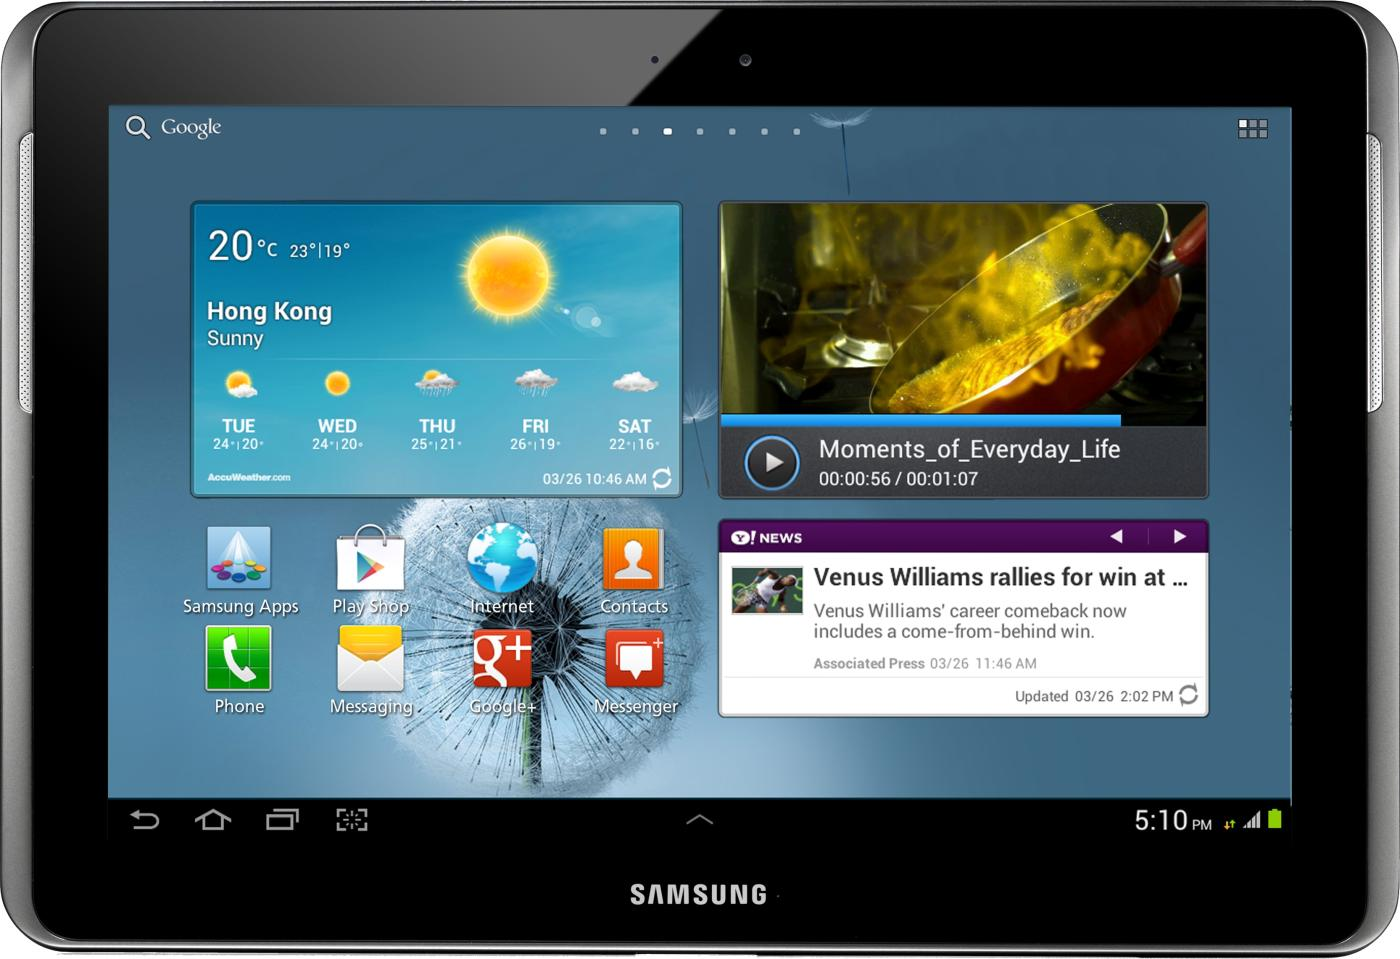 root samsung galaxy tab 2 7.0 p3100 ics 4.0.4